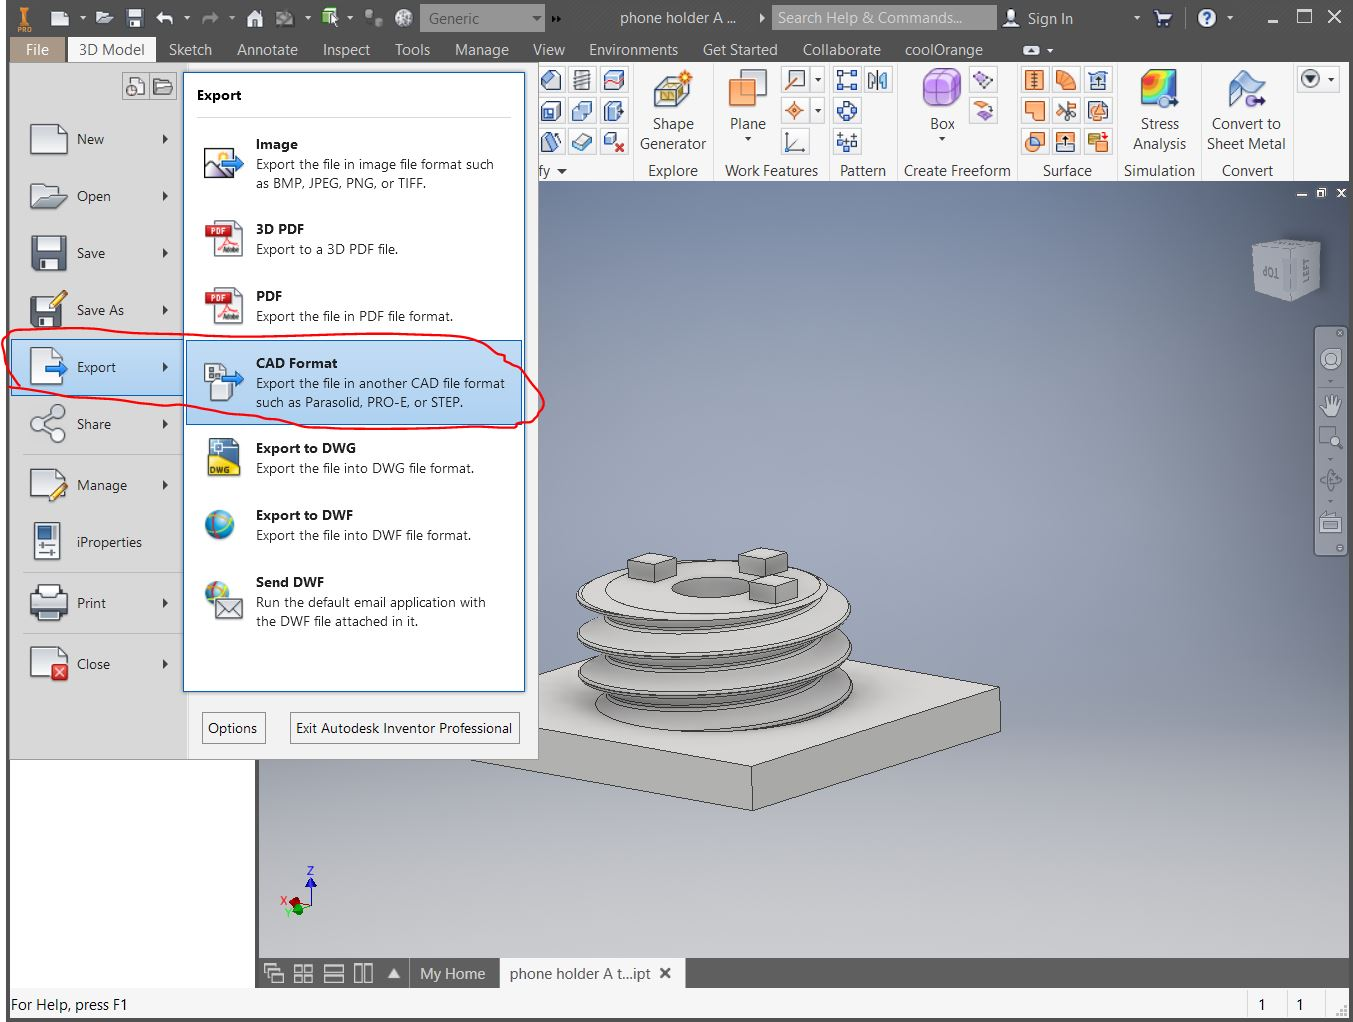 How to Export STL File from Inventor to Cura for 3D Printing